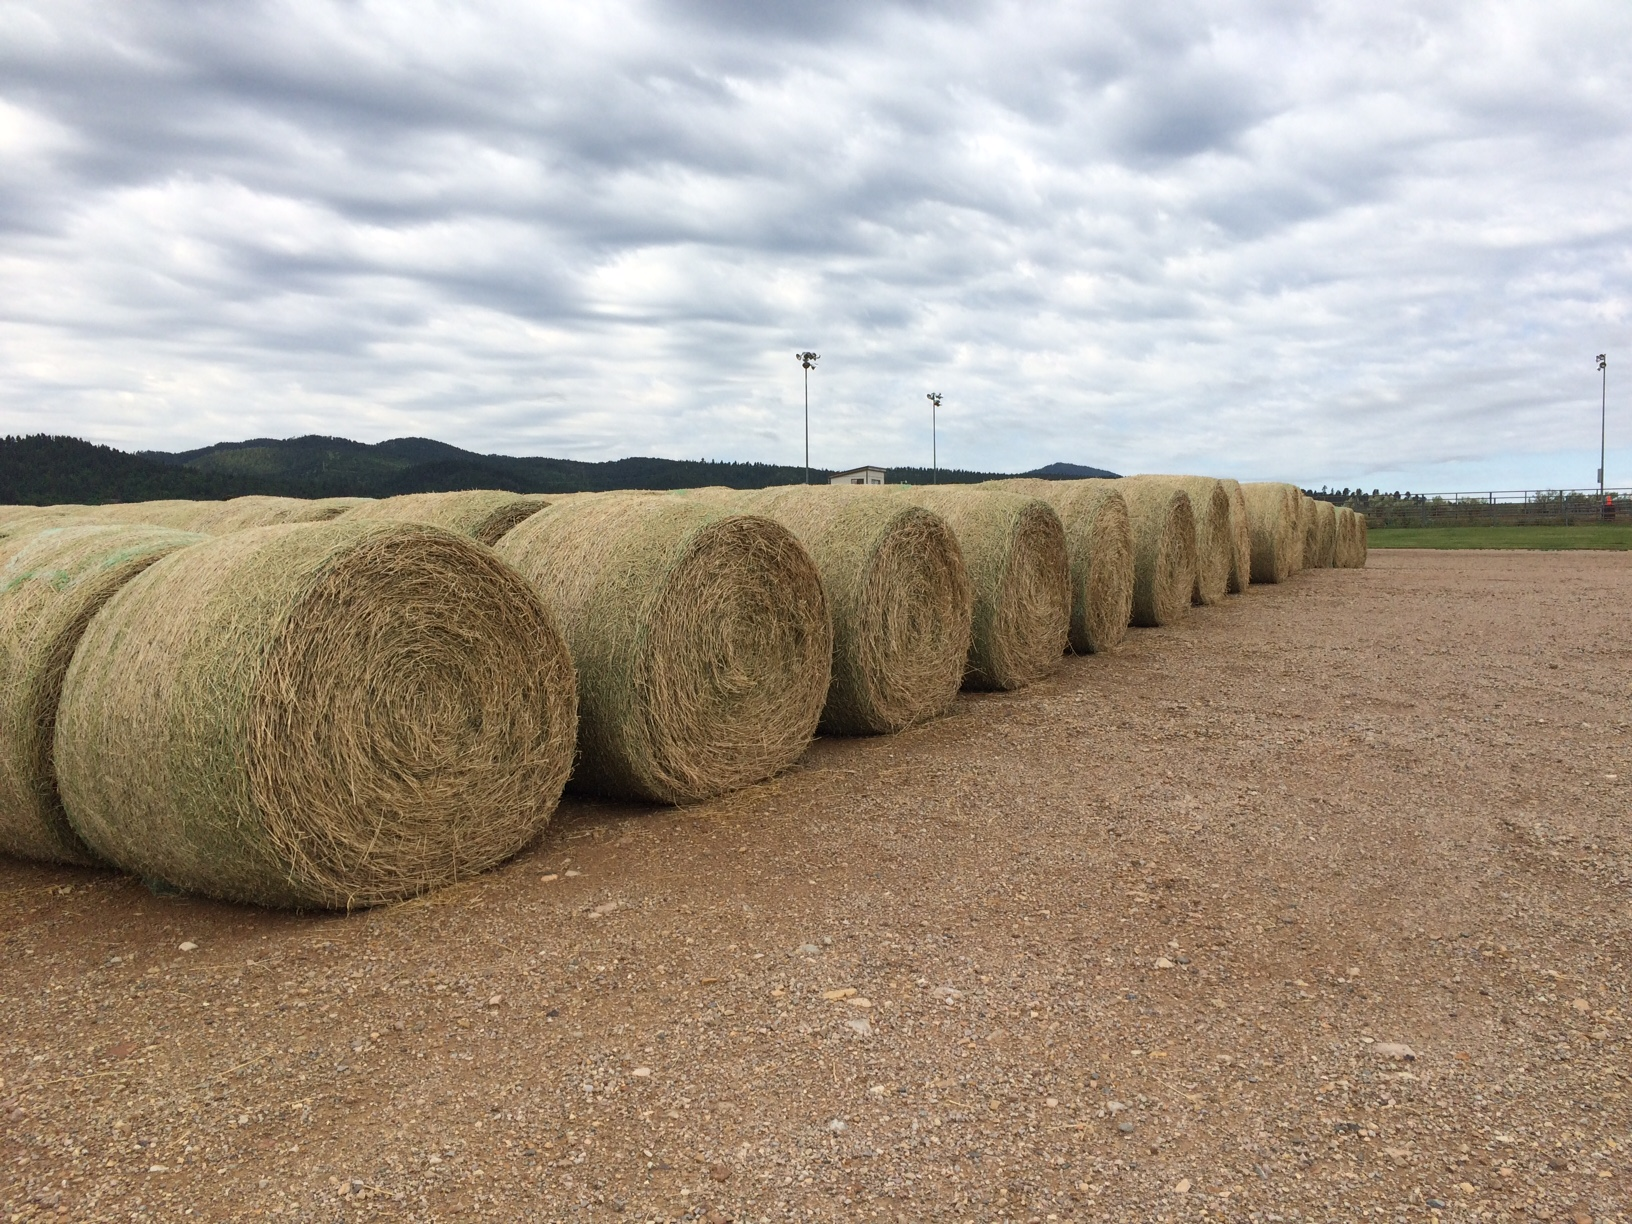 South dakota spink county doland - Bismarck N D A Hay Donation Lottery Program Set Up In North Dakota To Help Drought Stricken Ranchers Is Being Expanded To Producers In South